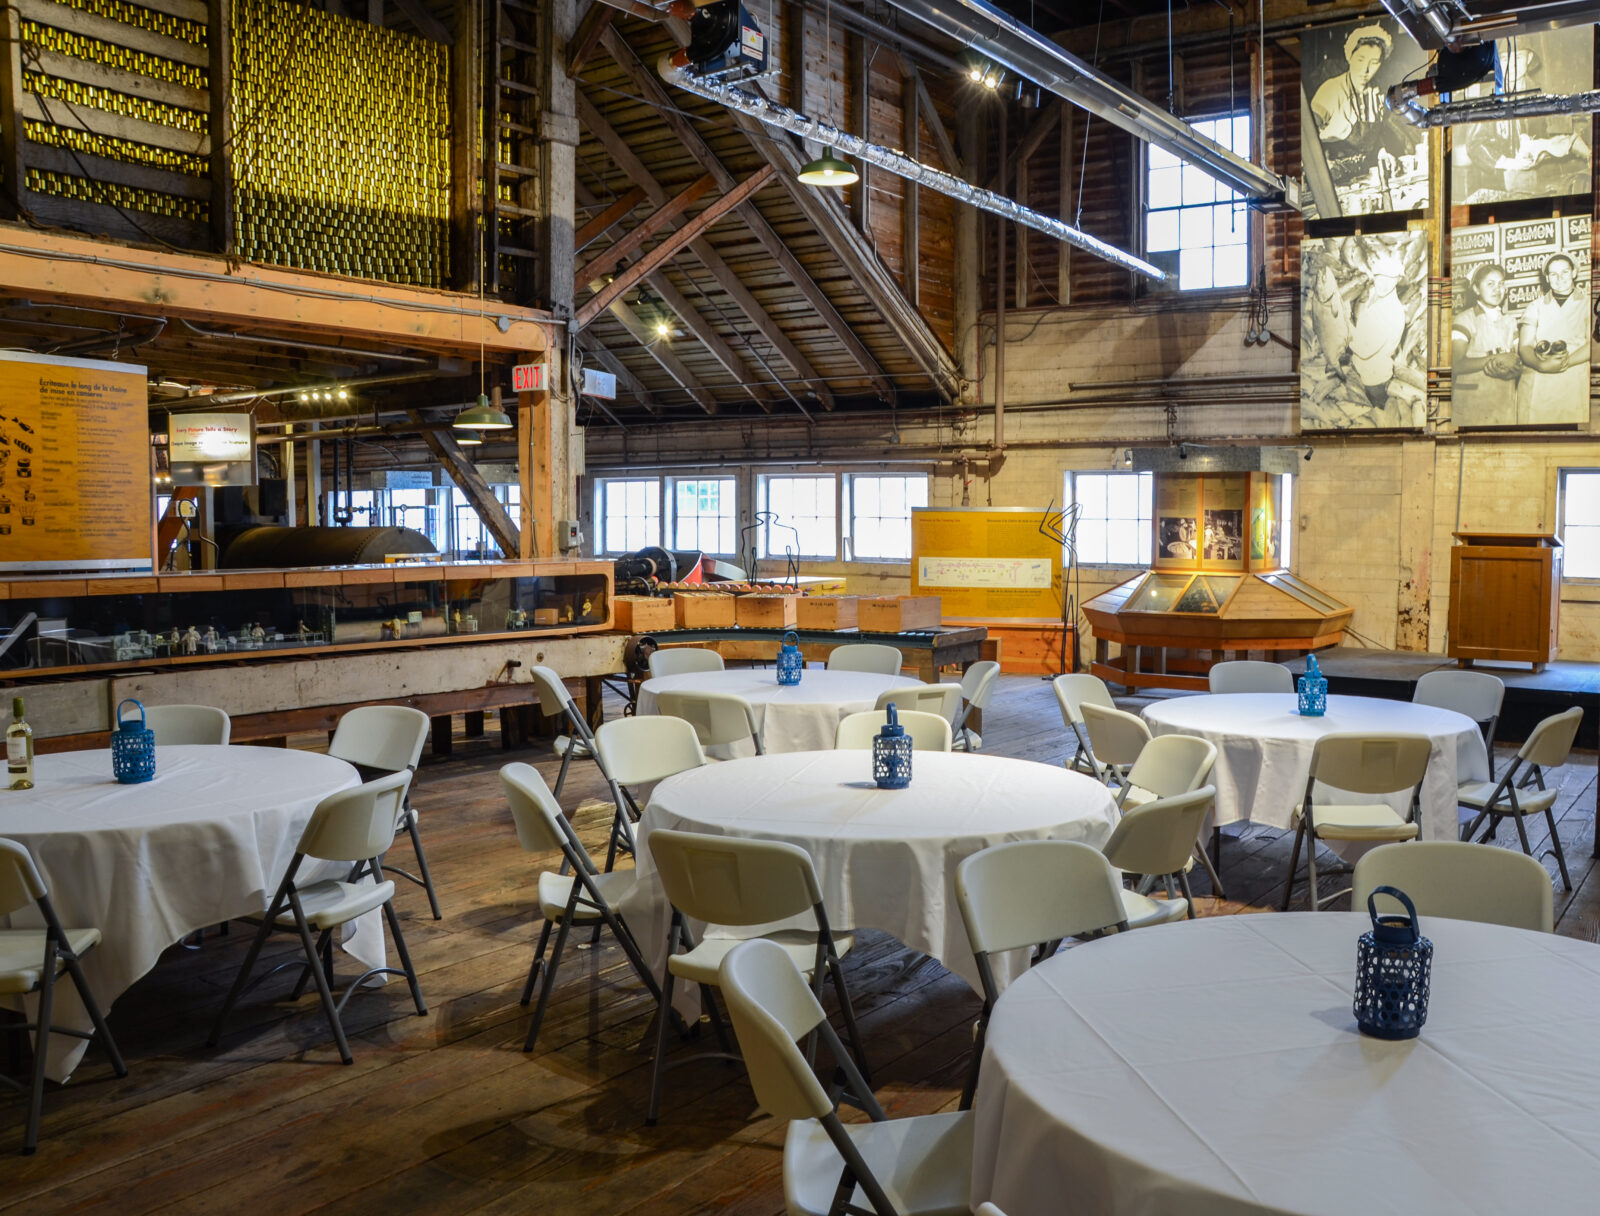 Banquet tables and chairs set up inside historic cannery